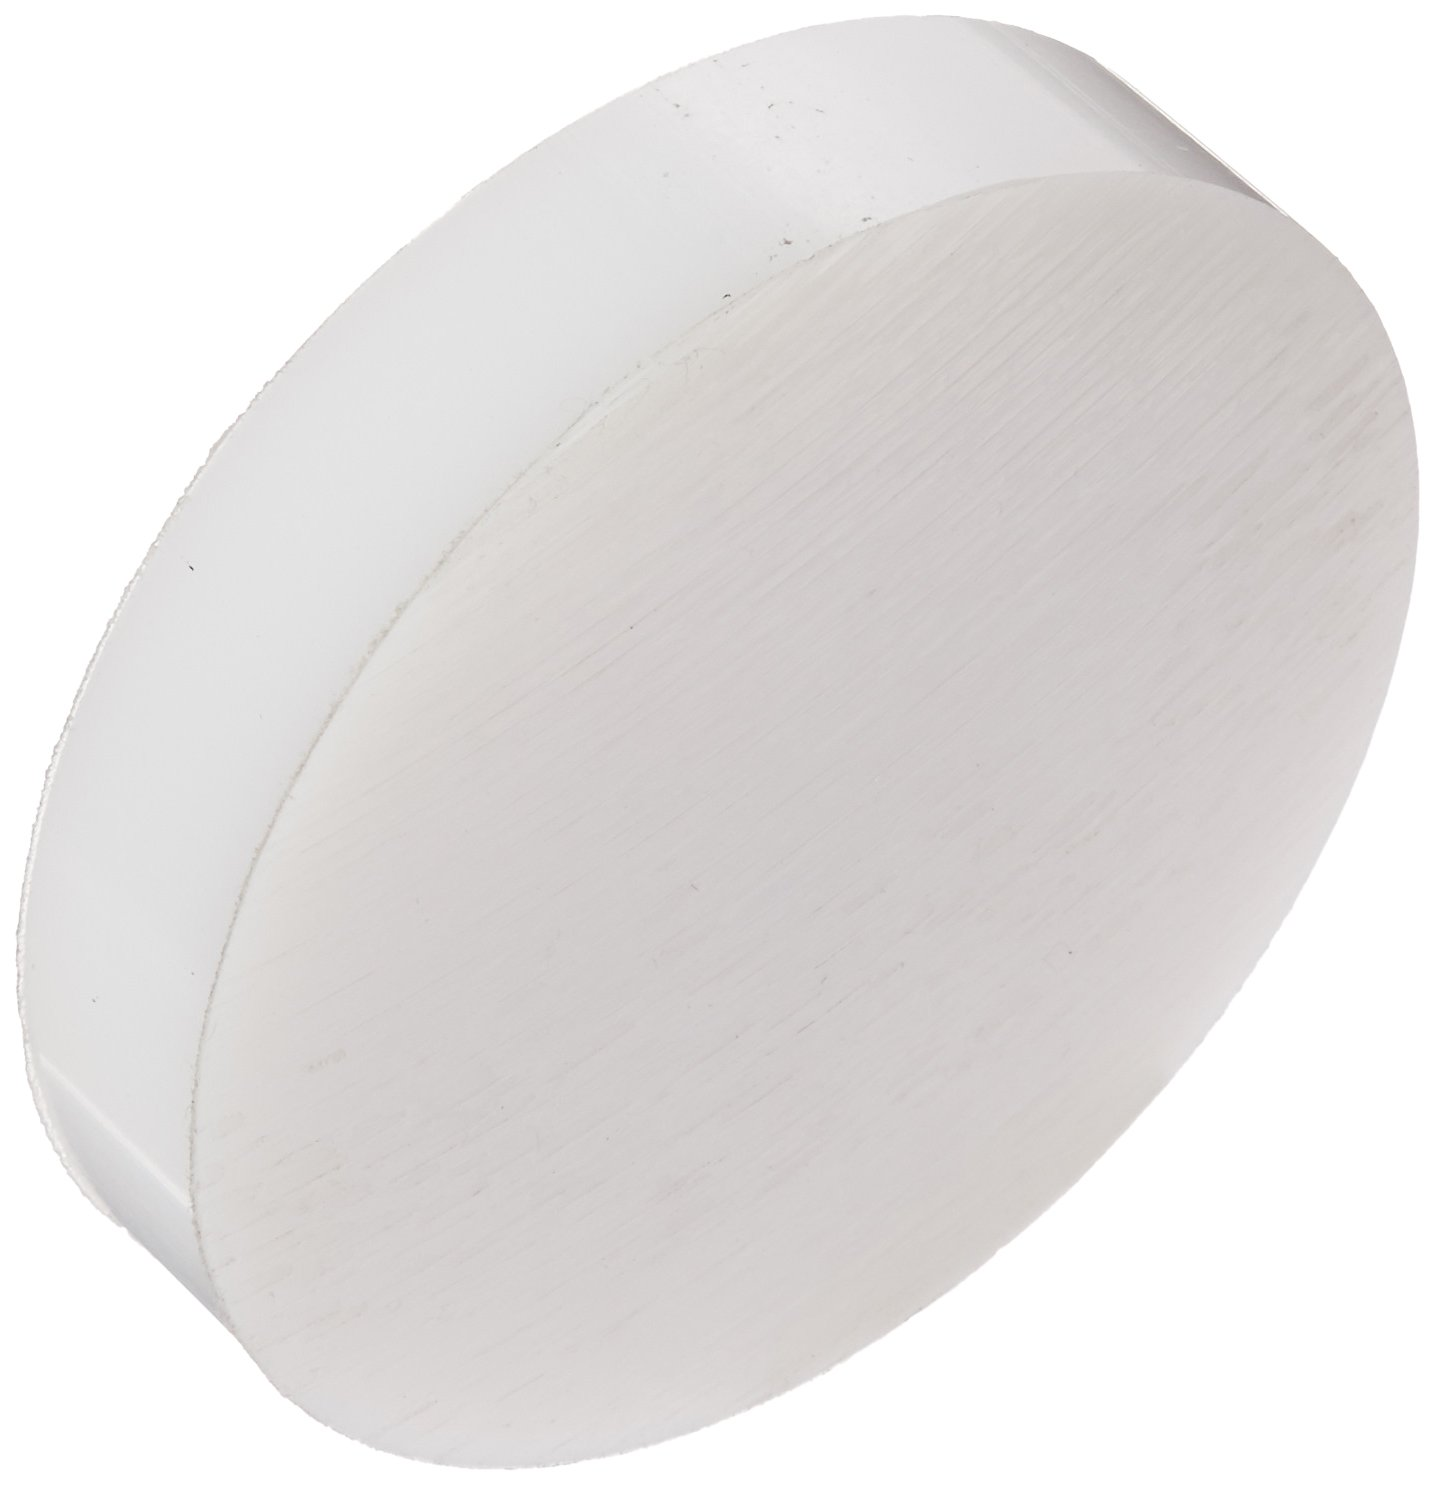 HDPE (High Density Polyethylene) Disc, Translucent White, Meets ASTM D4976/UL 94HB, 5' Diameter, 1' Thick 5 Diameter 1 Thick Small Parts Inc ZAM2966-B00EVCG9FS